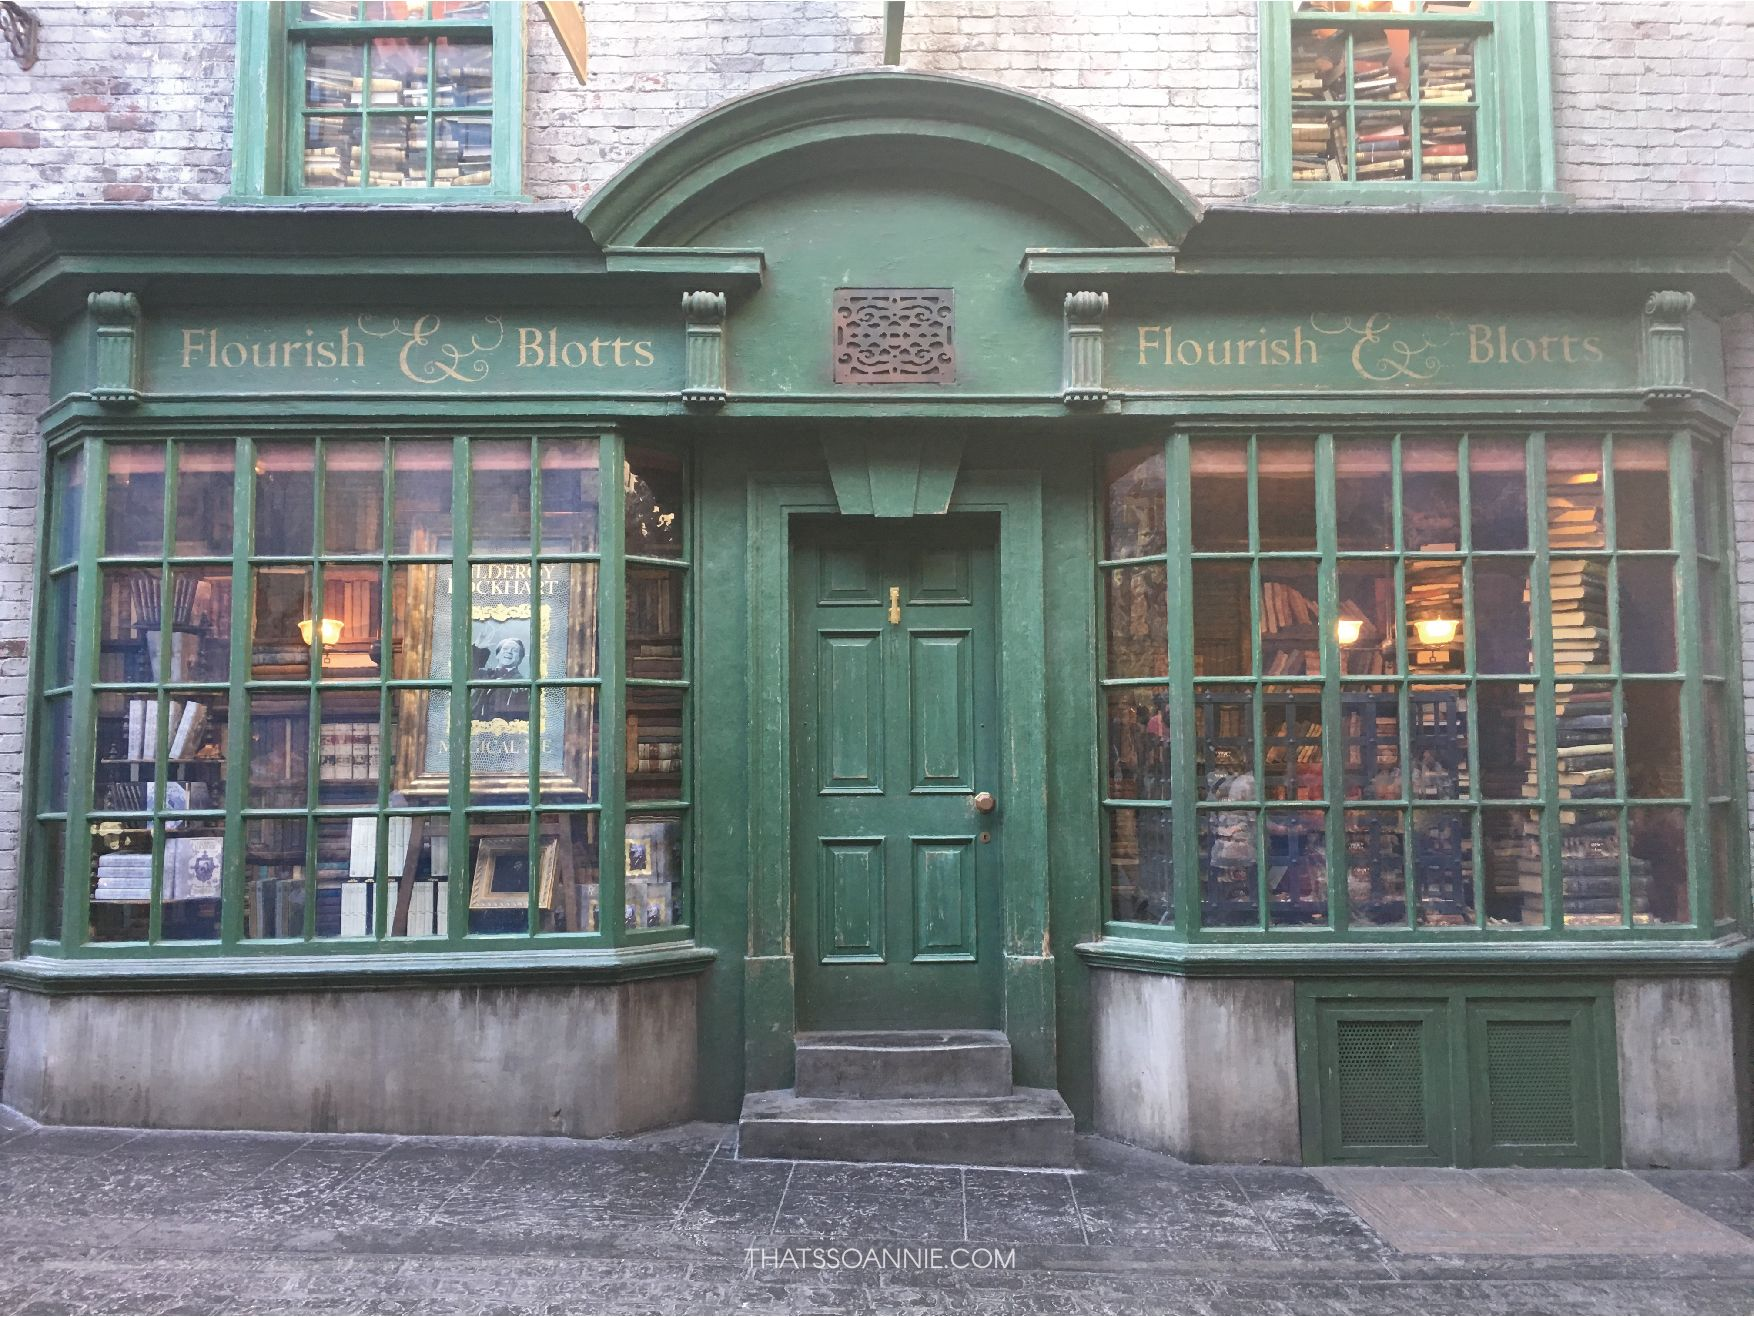 Image result for diagon alley flourish and blotts images